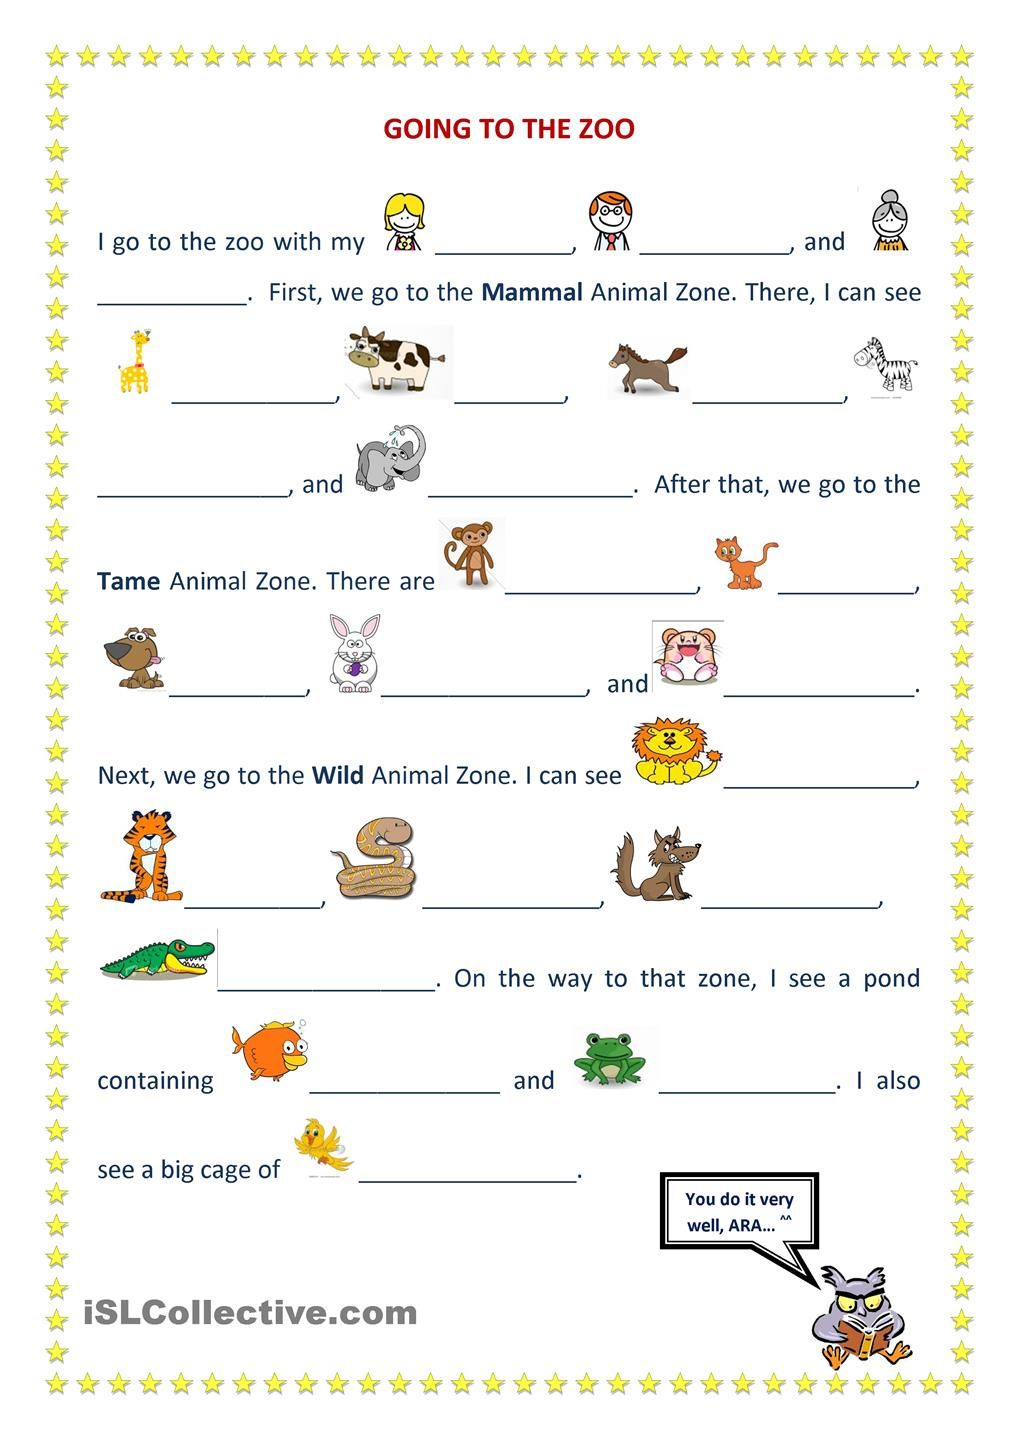 Going To The Zoo English Lessons For Kids English Grammar Worksheets Learning English For Kids [ 1440 x 1018 Pixel ]